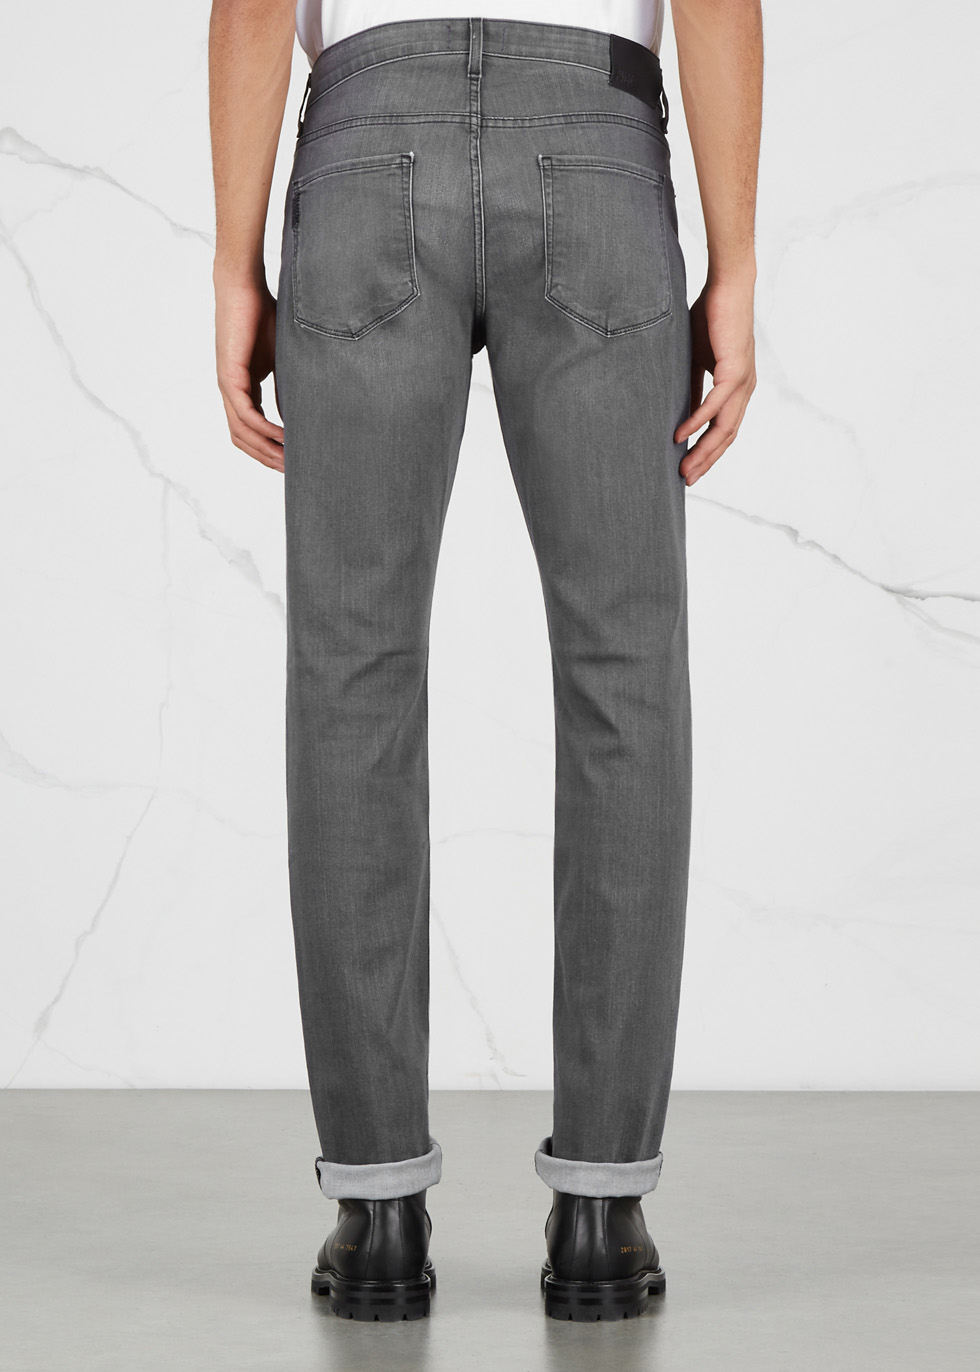 Federal grey straight-leg jeans - Paige